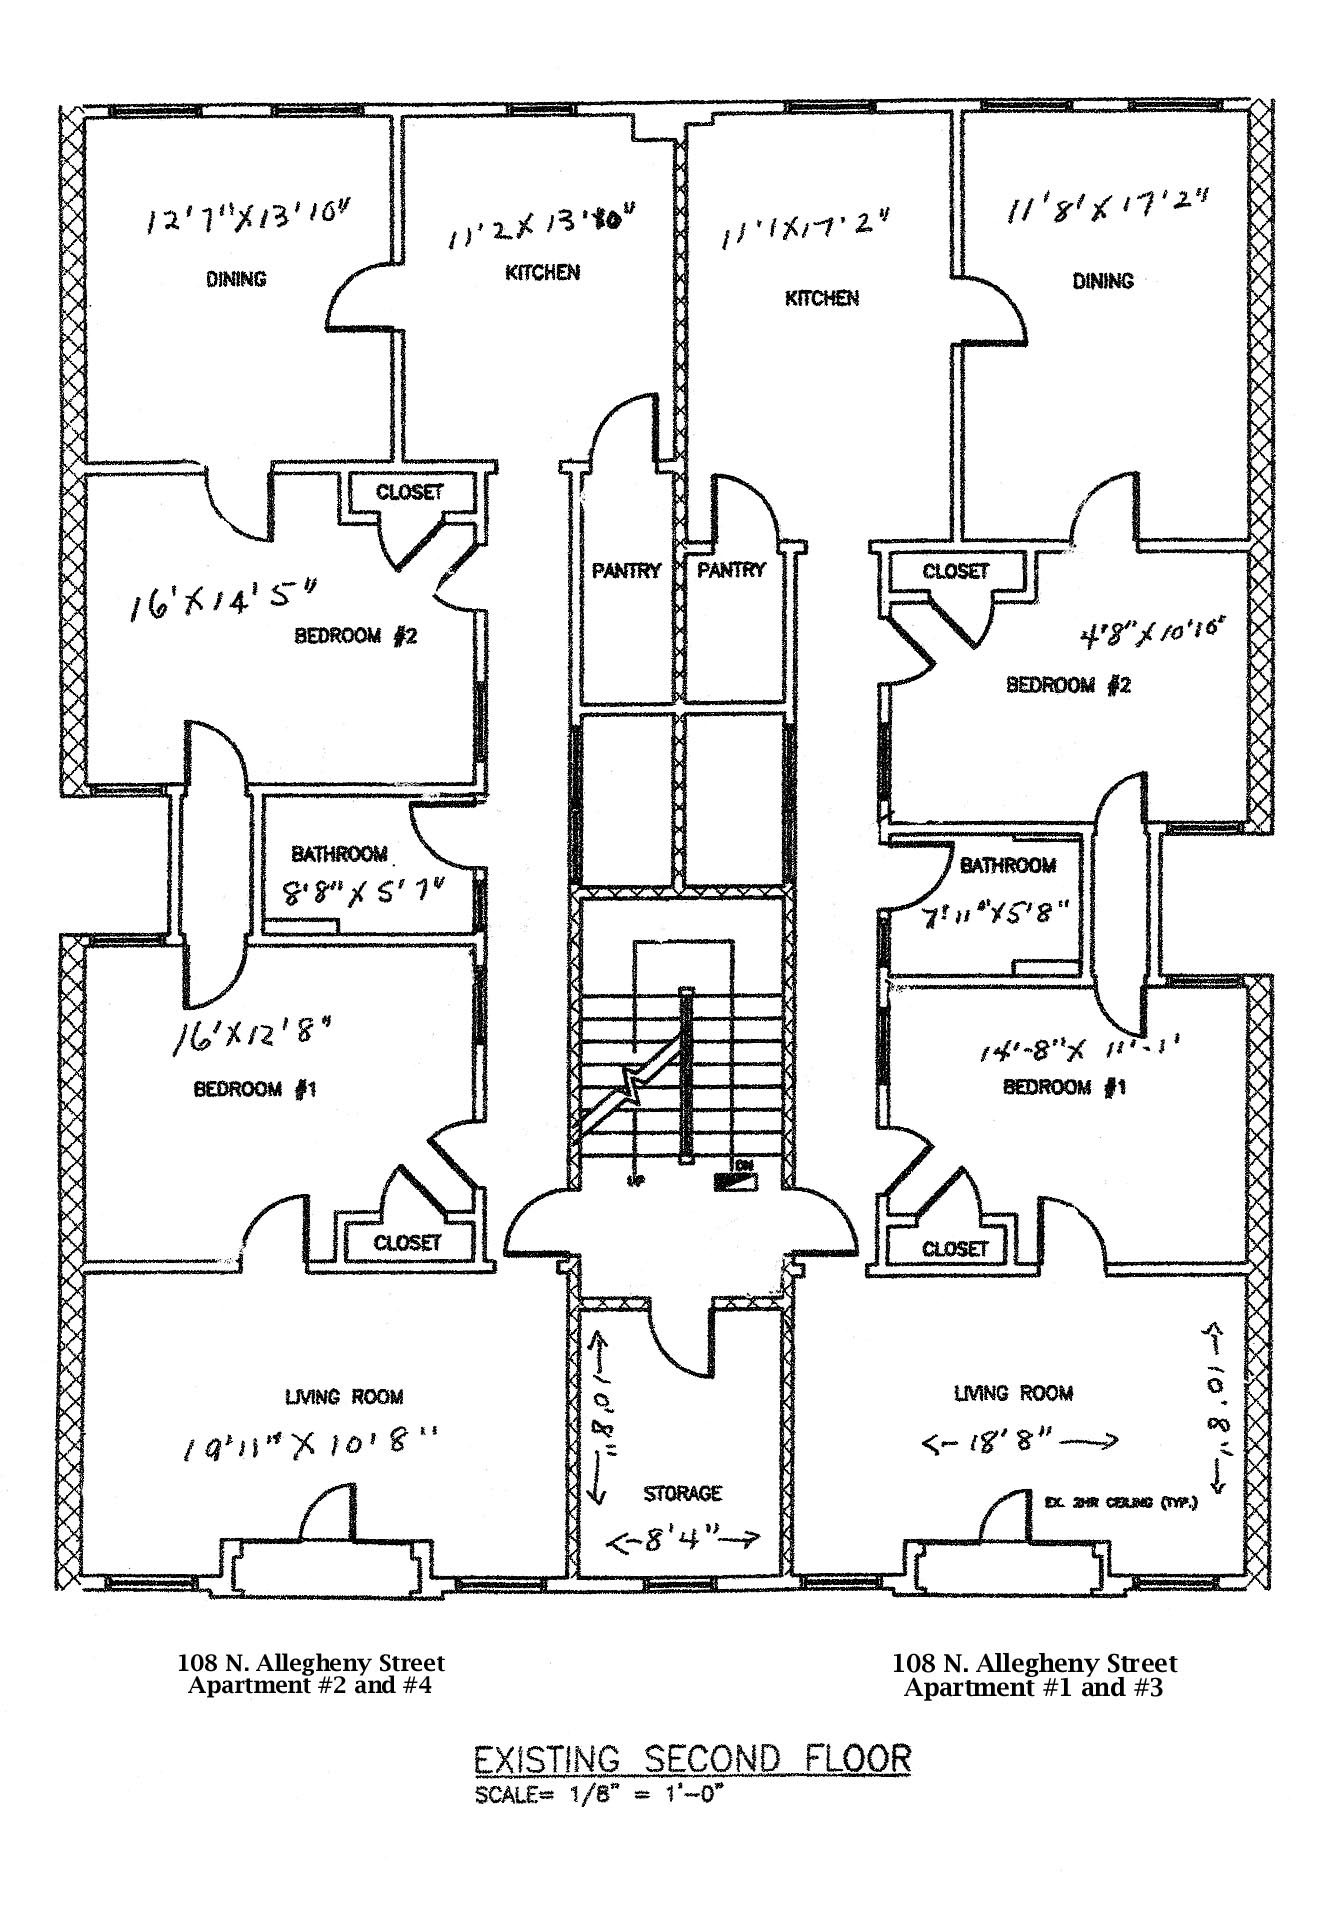 Floor plan of the 2 bedroom professional apartments for rent at 108 North Allegheny Street, Bellefonte